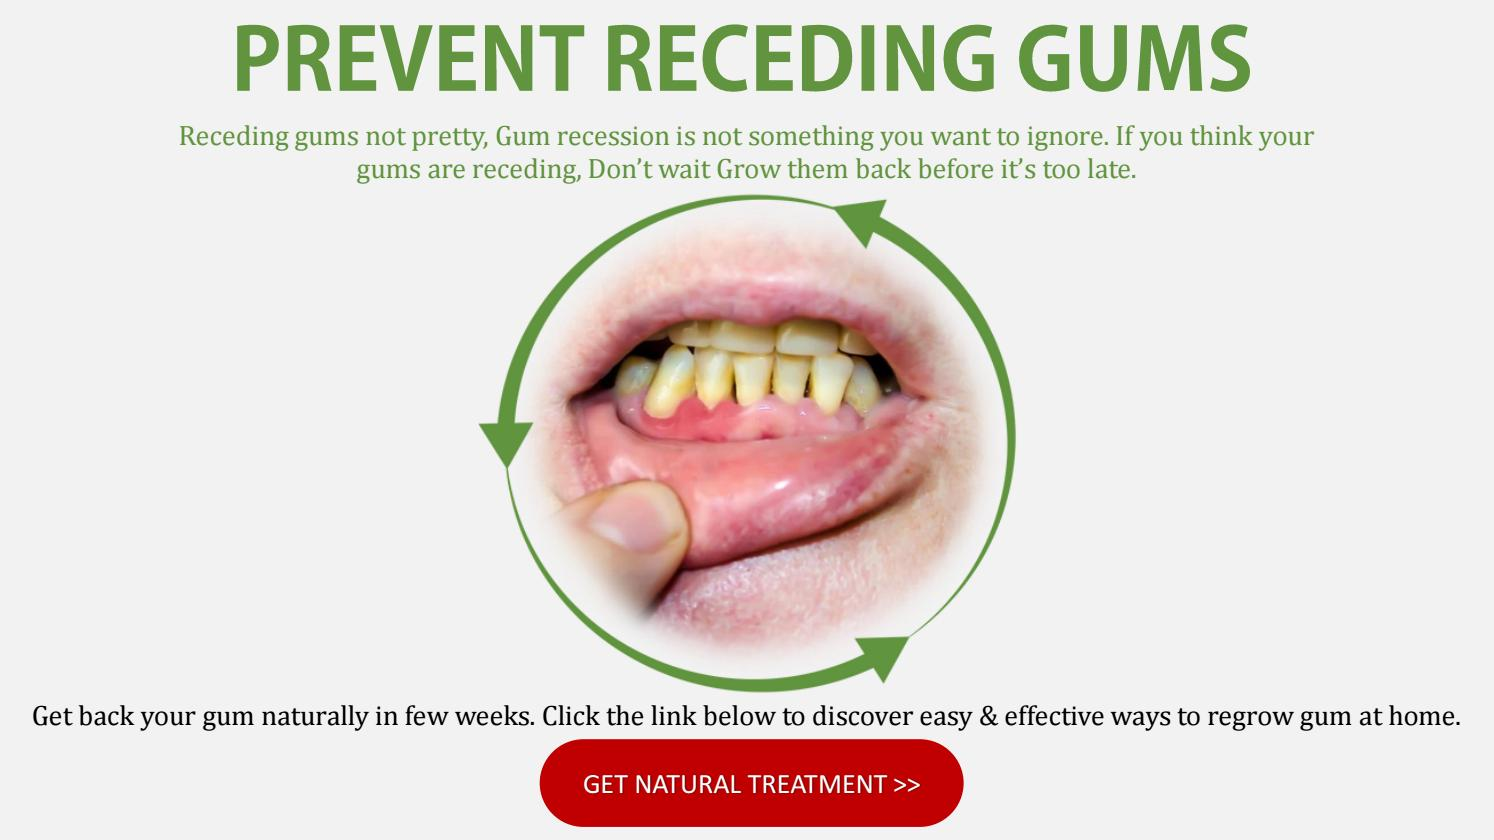 Natural Treatment To Prevent receding gums